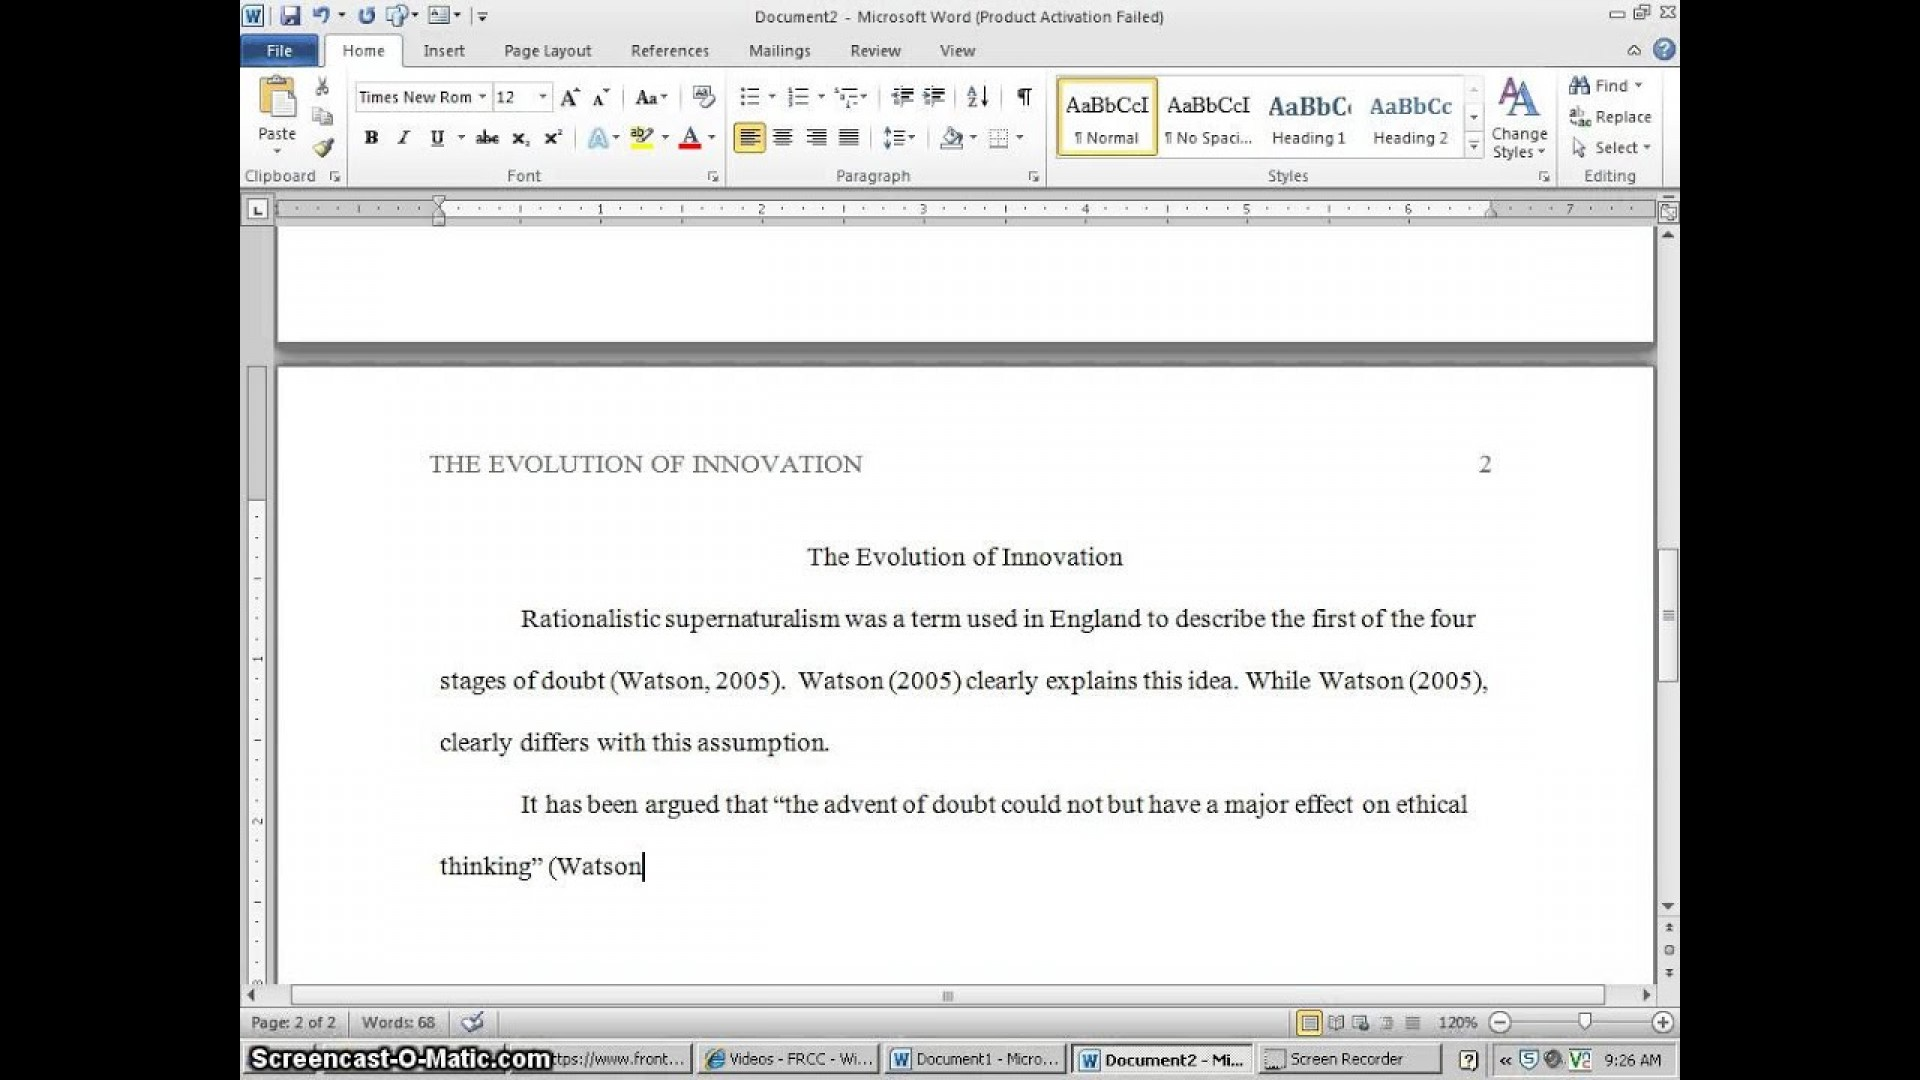 006 How To Cite An Essay In Apa Maxresdefault Wonderful Online Research Paper Using Unpublished Conference 1920